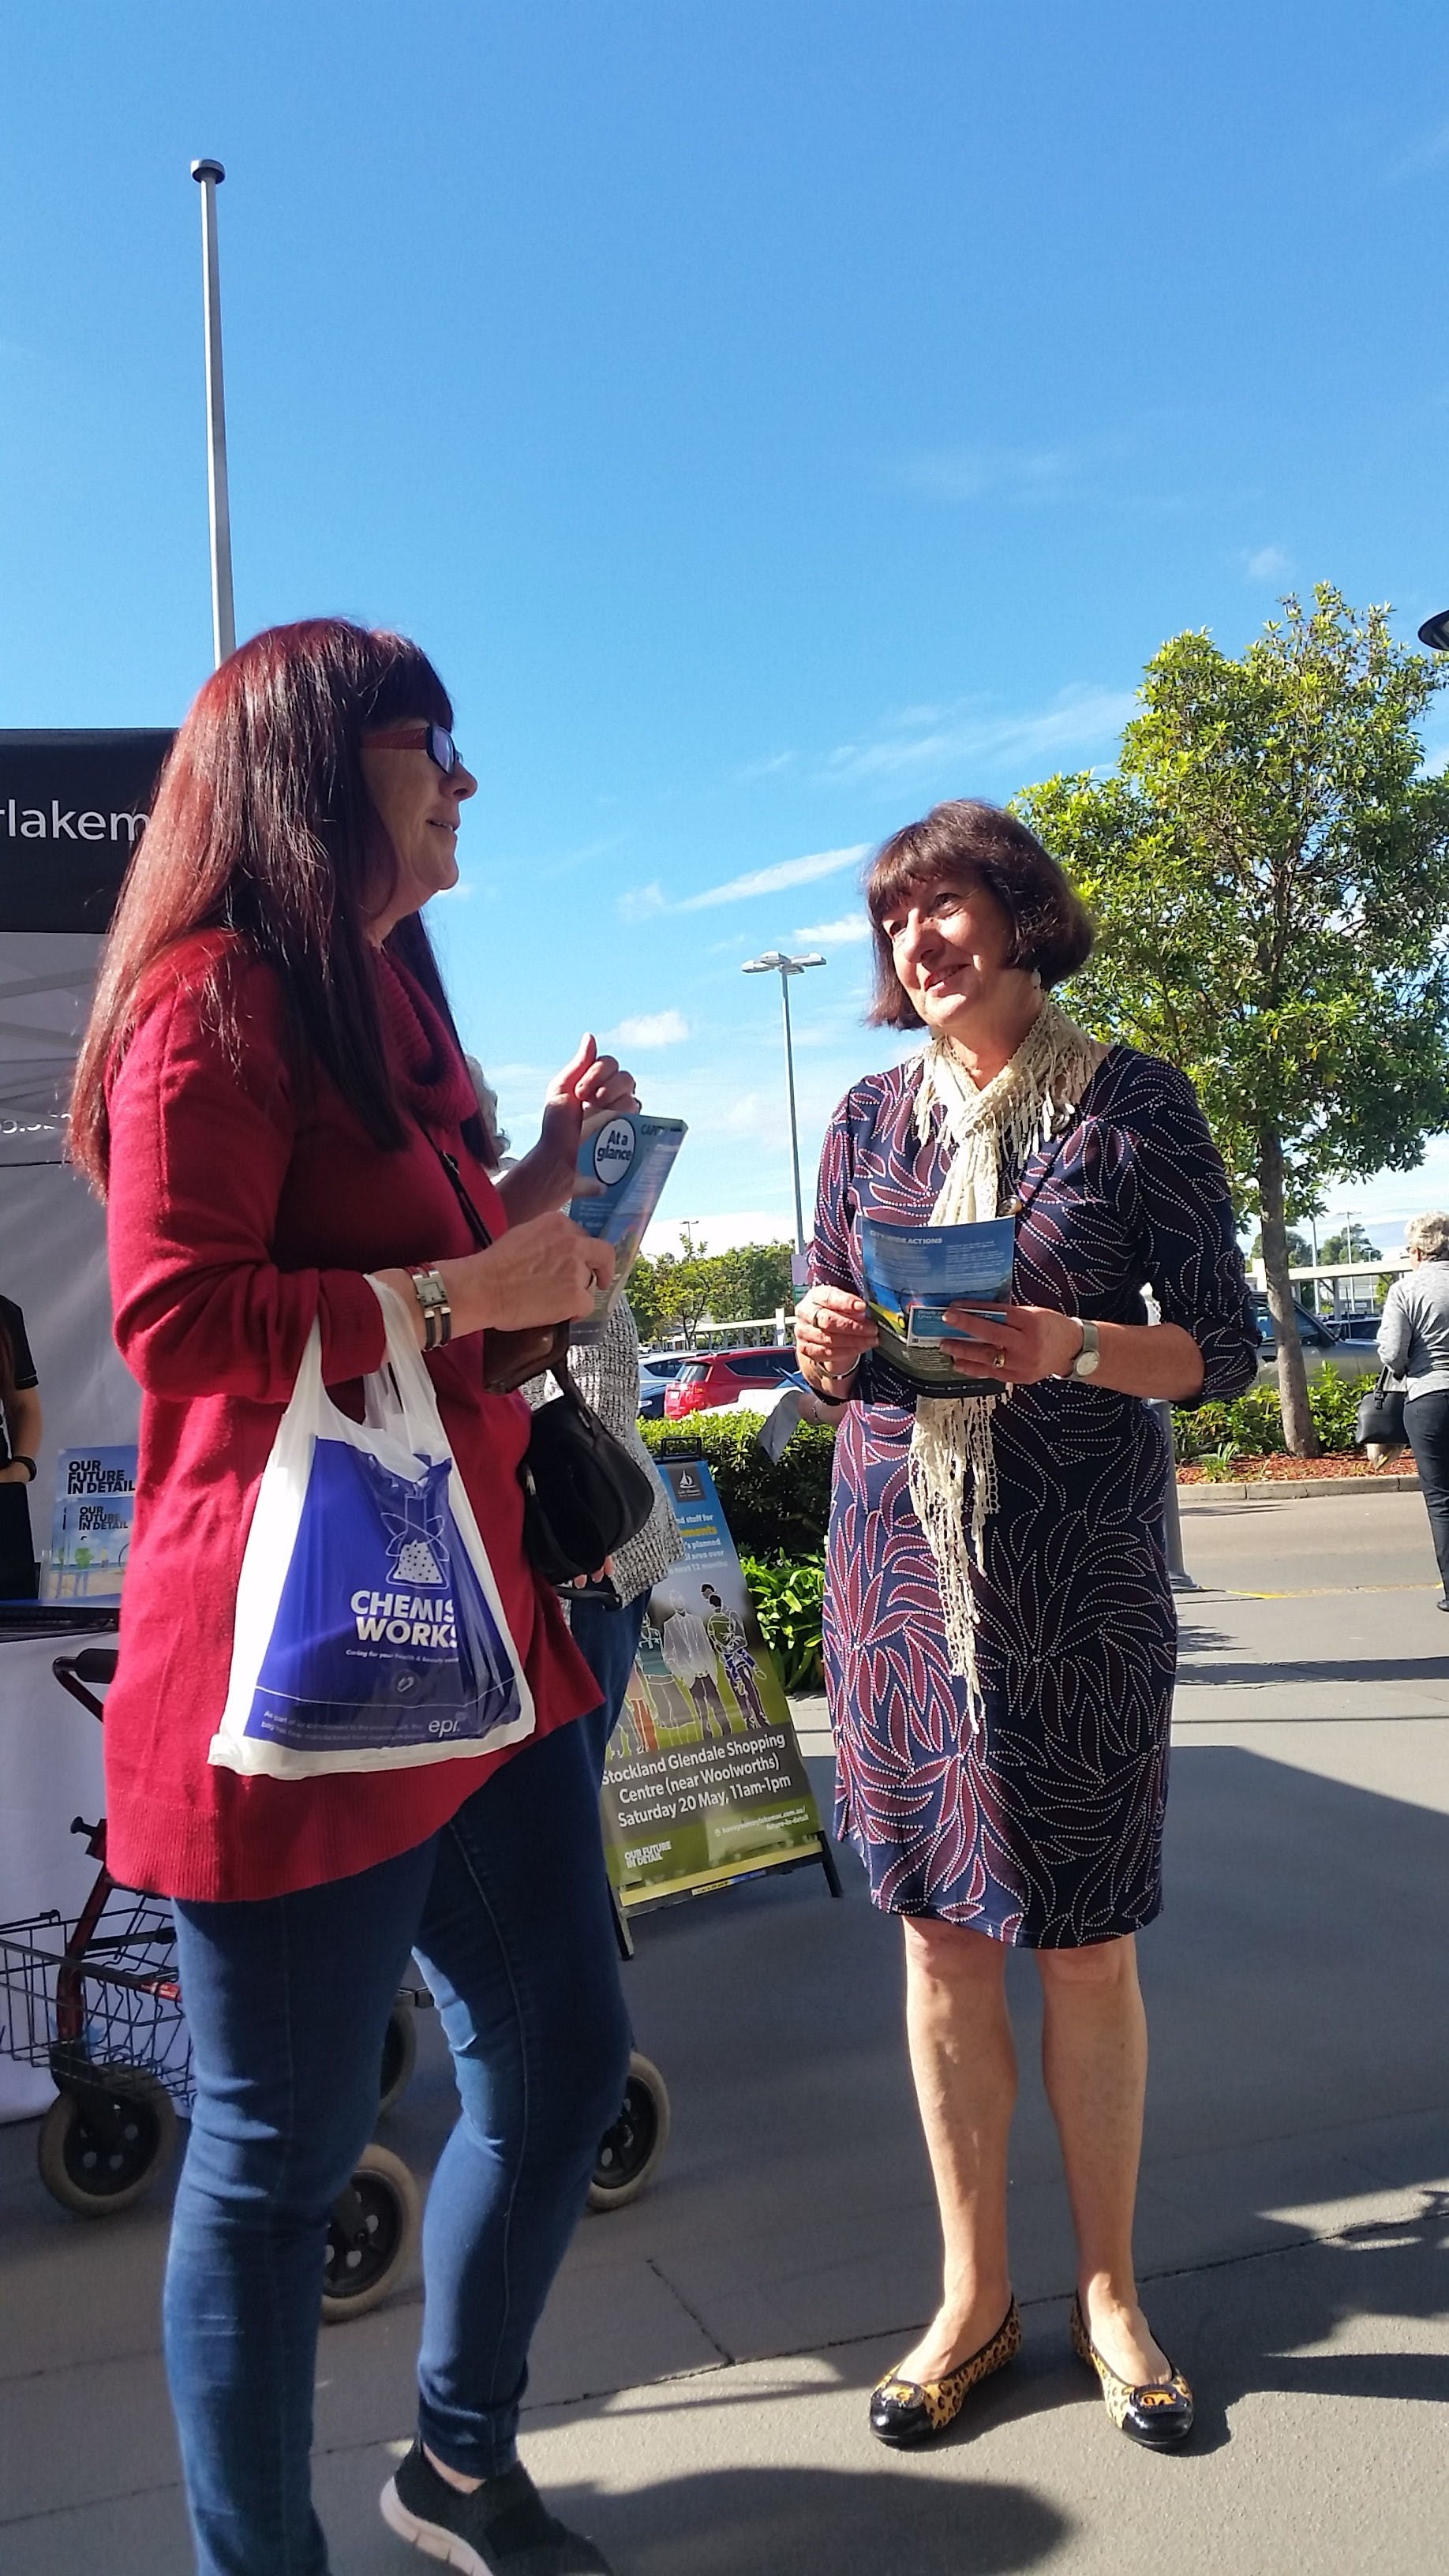 Lake Macquarie Mayor, Clr Kay Fraser speaking with a local resident